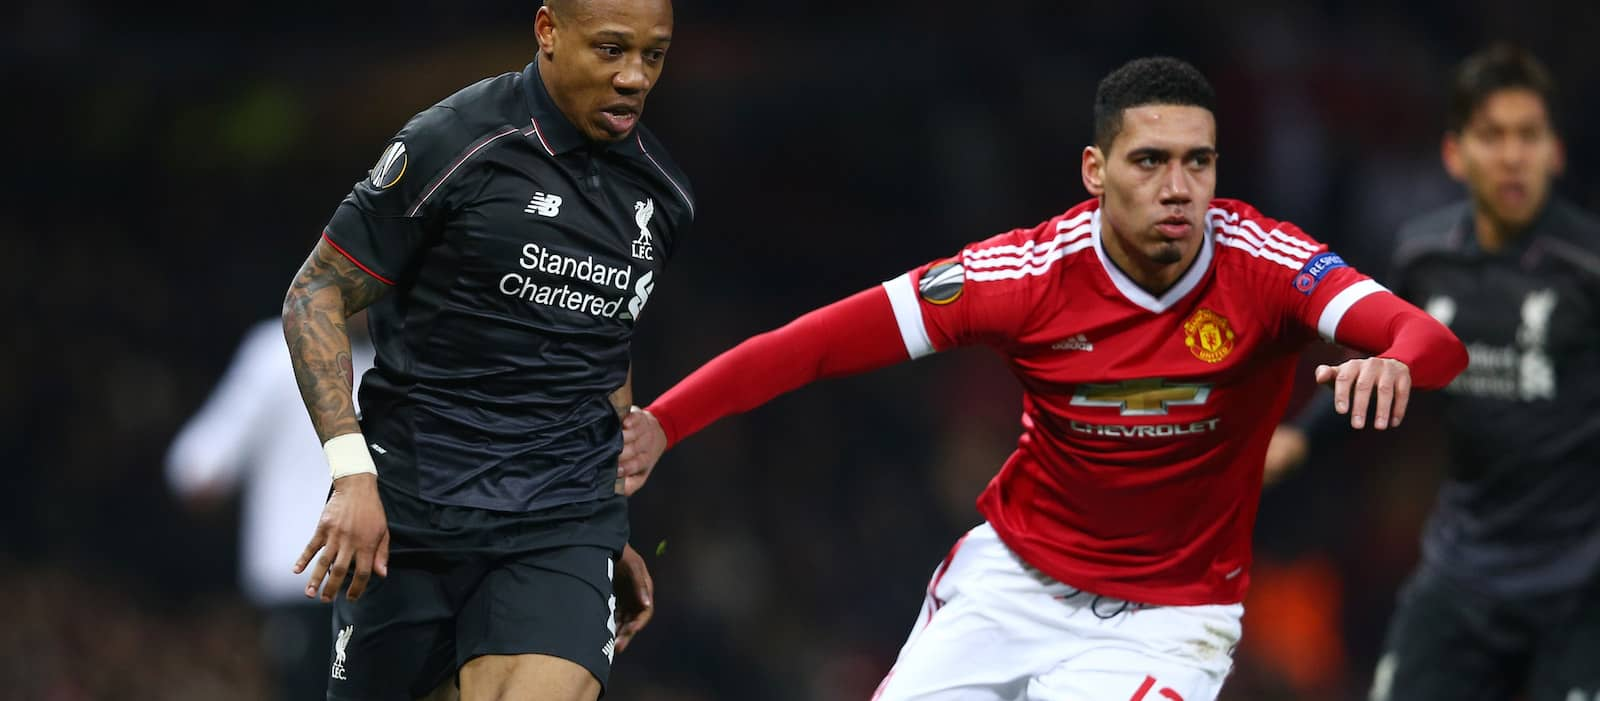 Chris Smalling determined to keep his starting place under Jose Mourinho